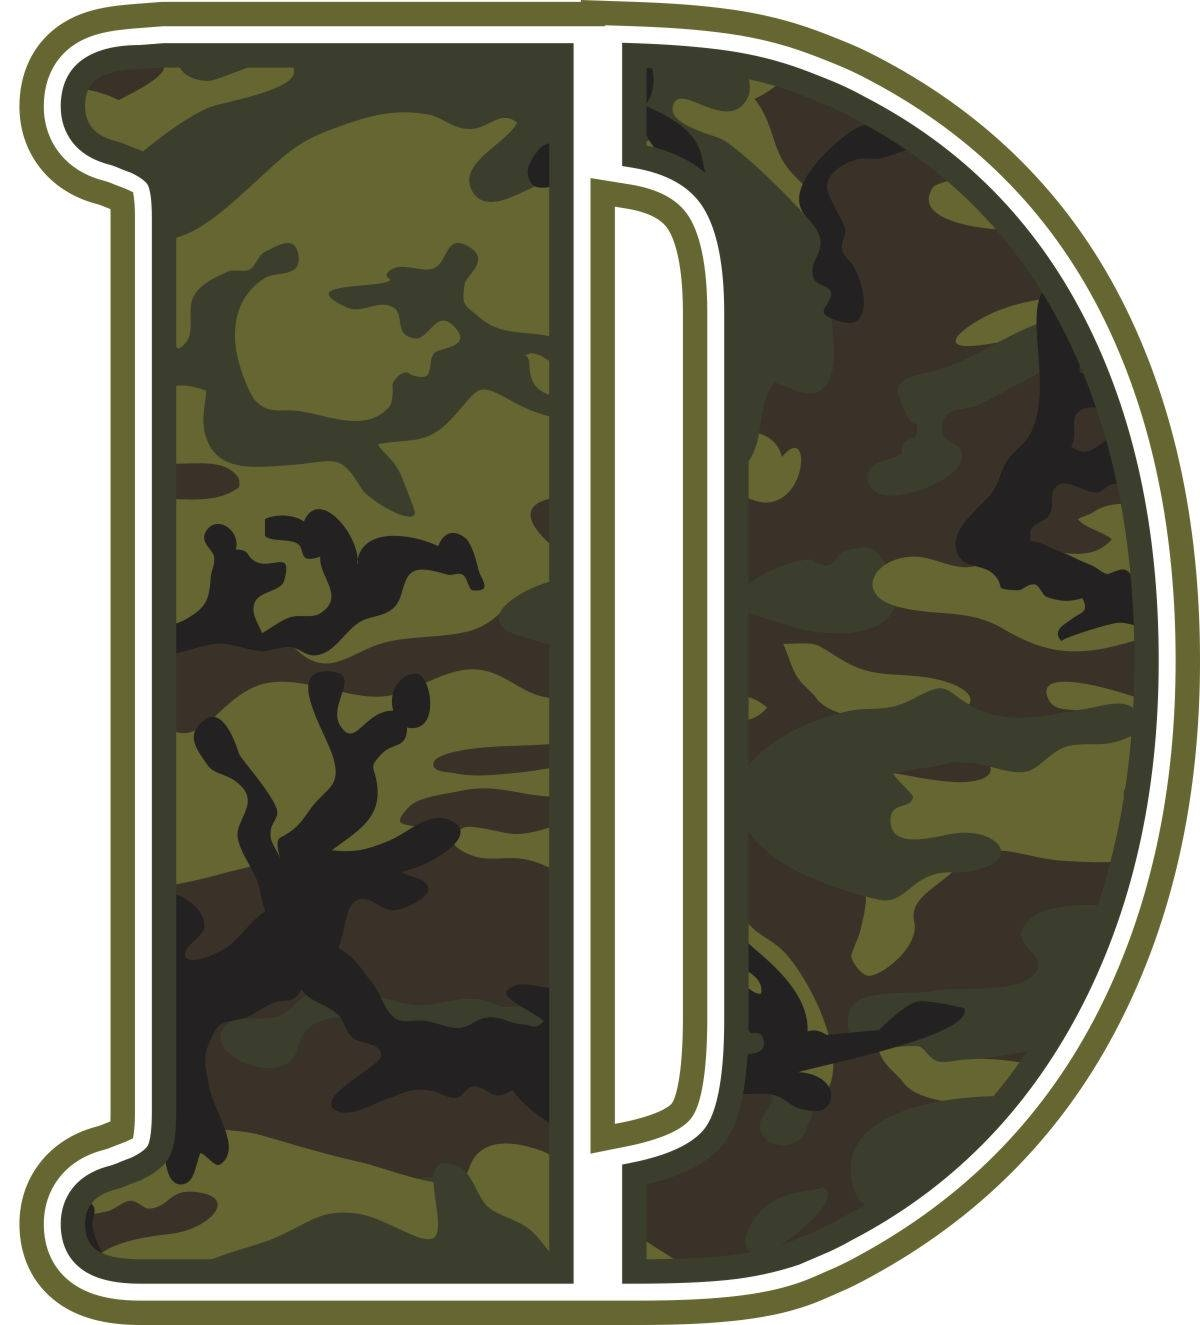 Green Camo Wall Letters | Potty Training Concepts In Most Up To Date Camouflage Wall Art (View 14 of 20)